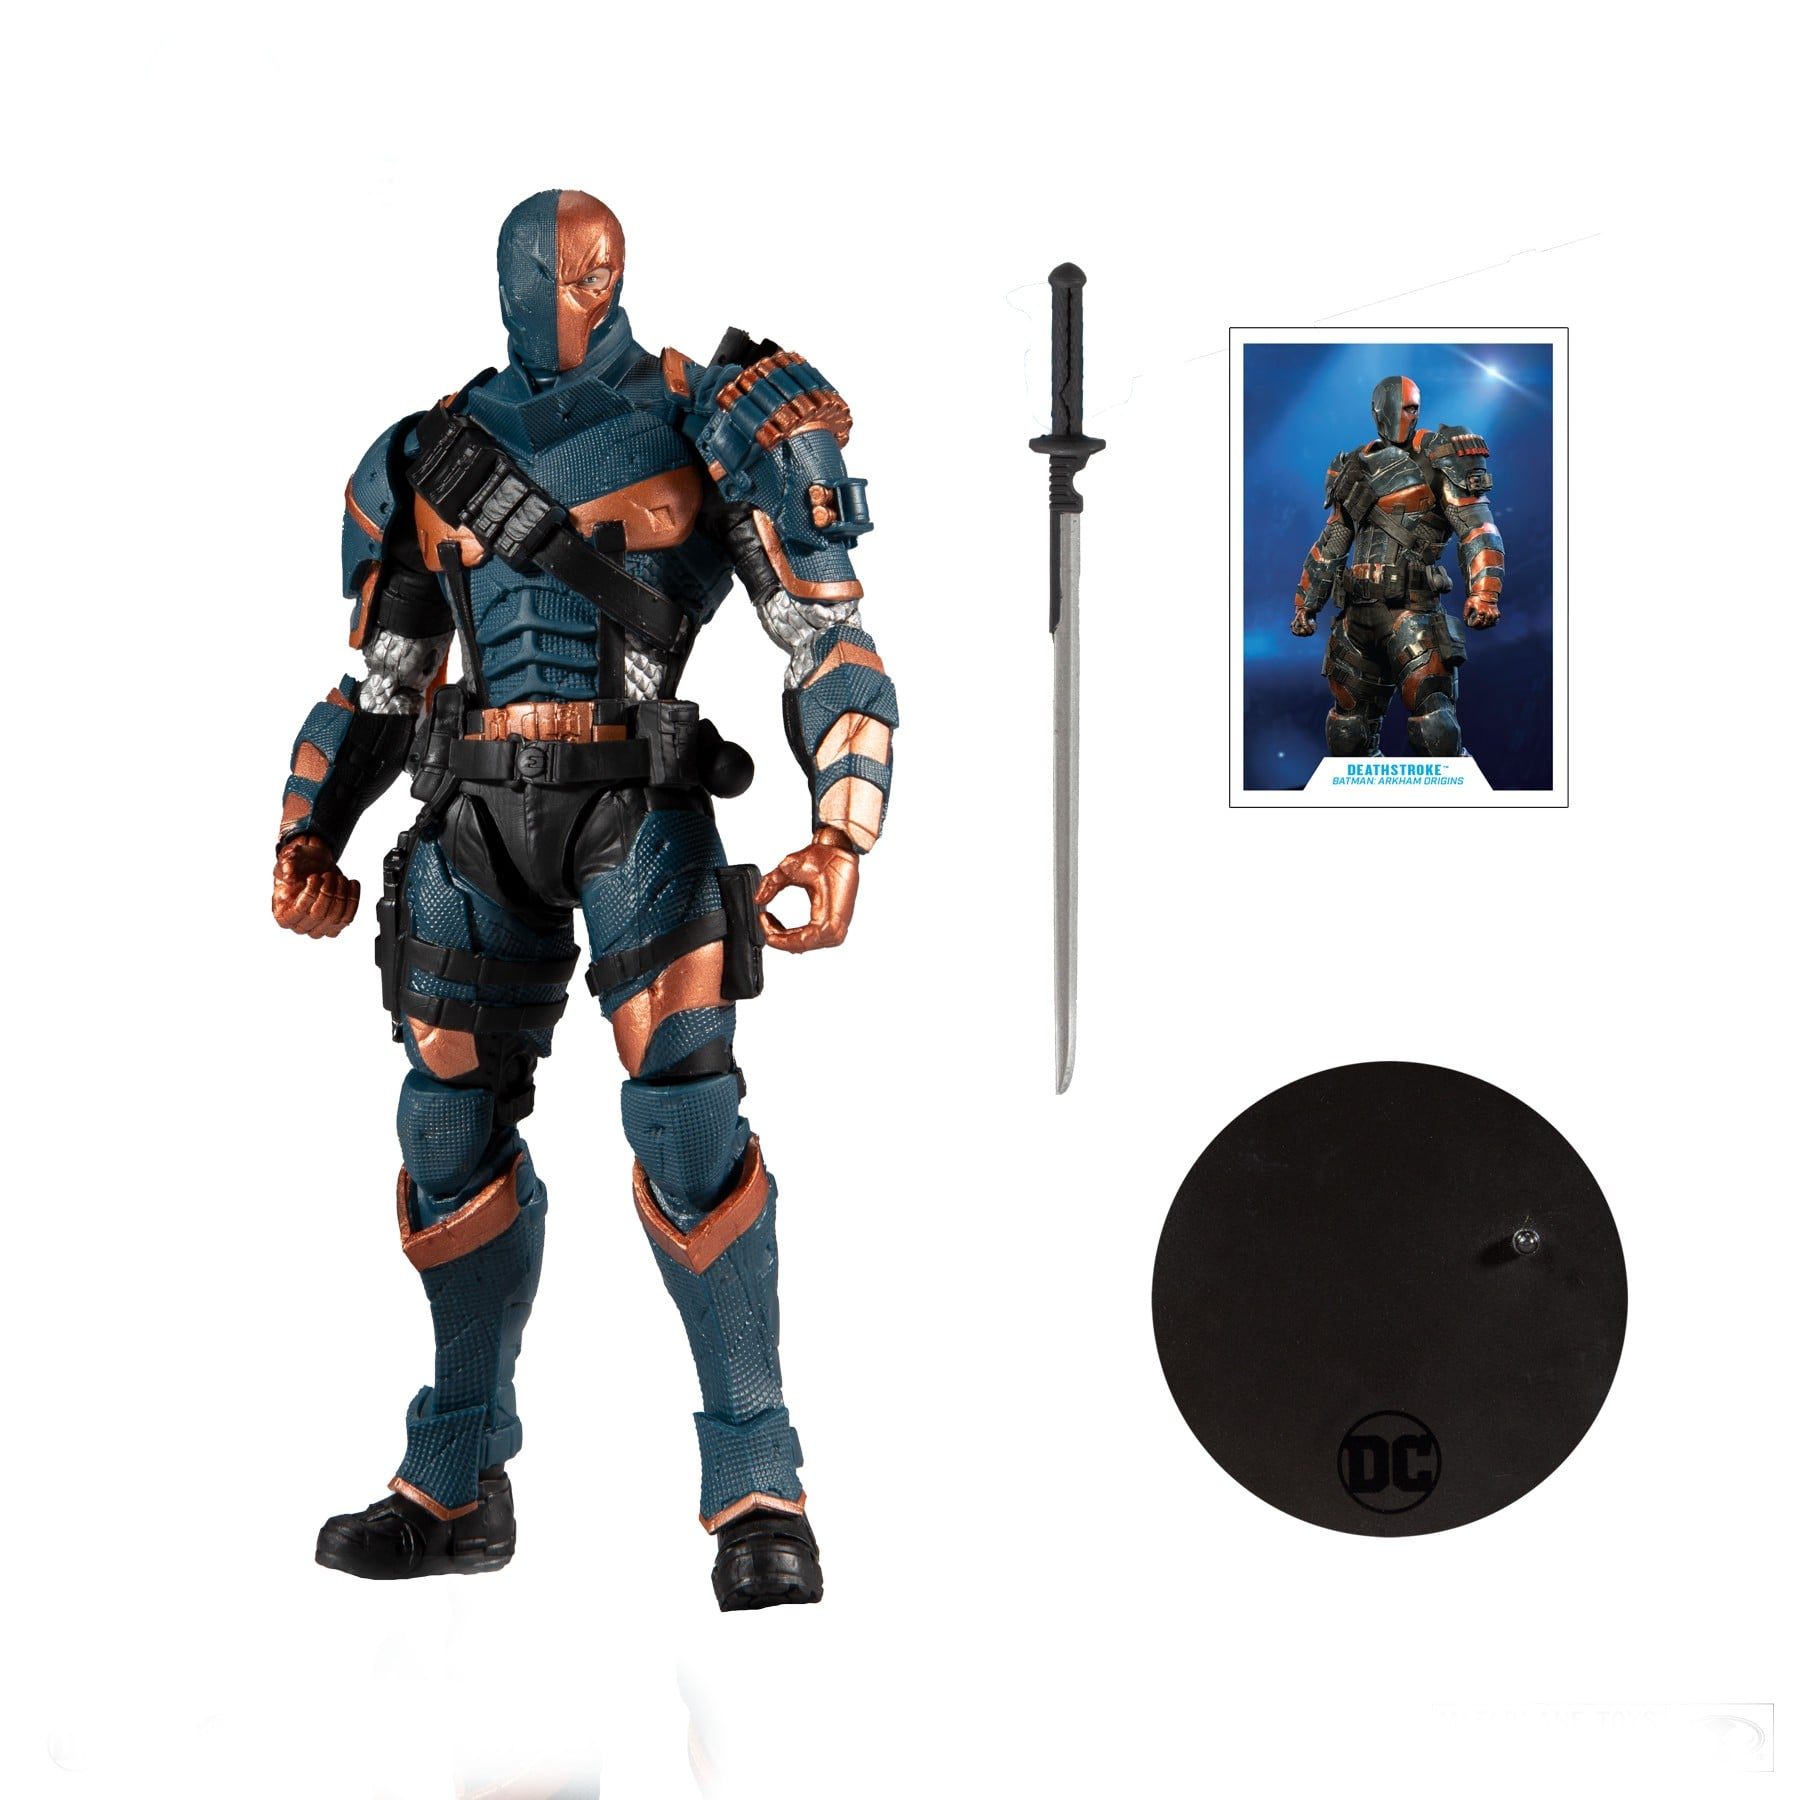 McFarland DC - Deathstroke Scale 7 inch